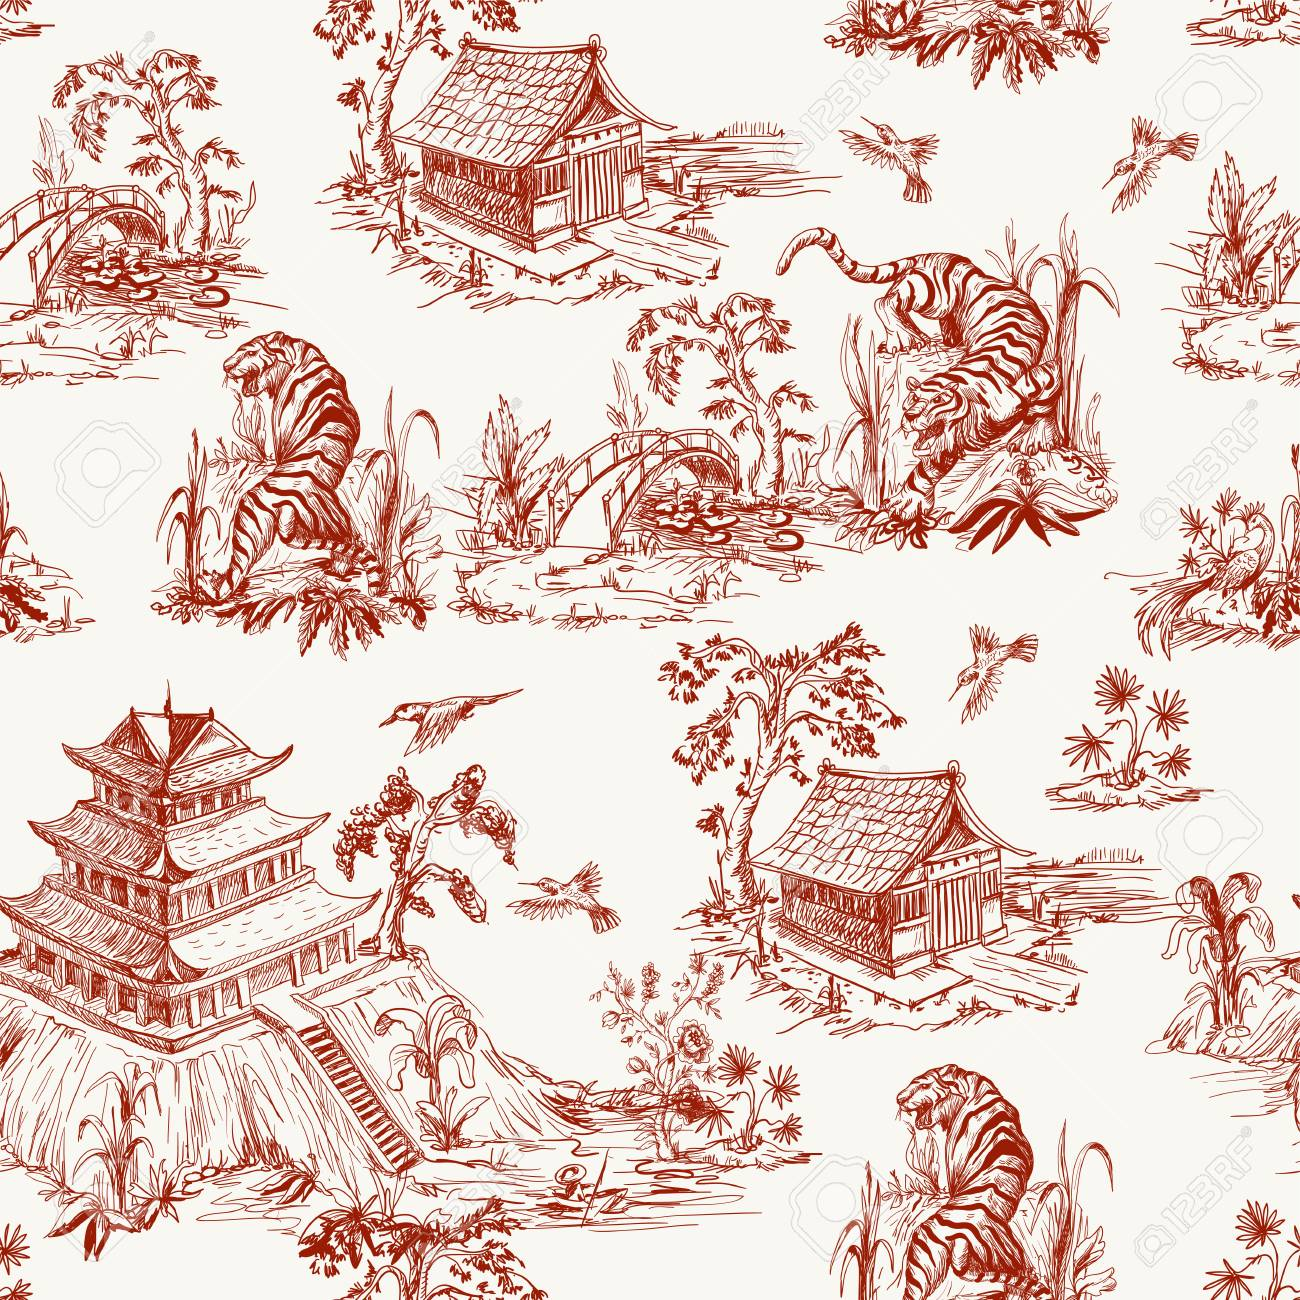 Seamless pattern in chinoiserie style for fabric or interior design - 123454321